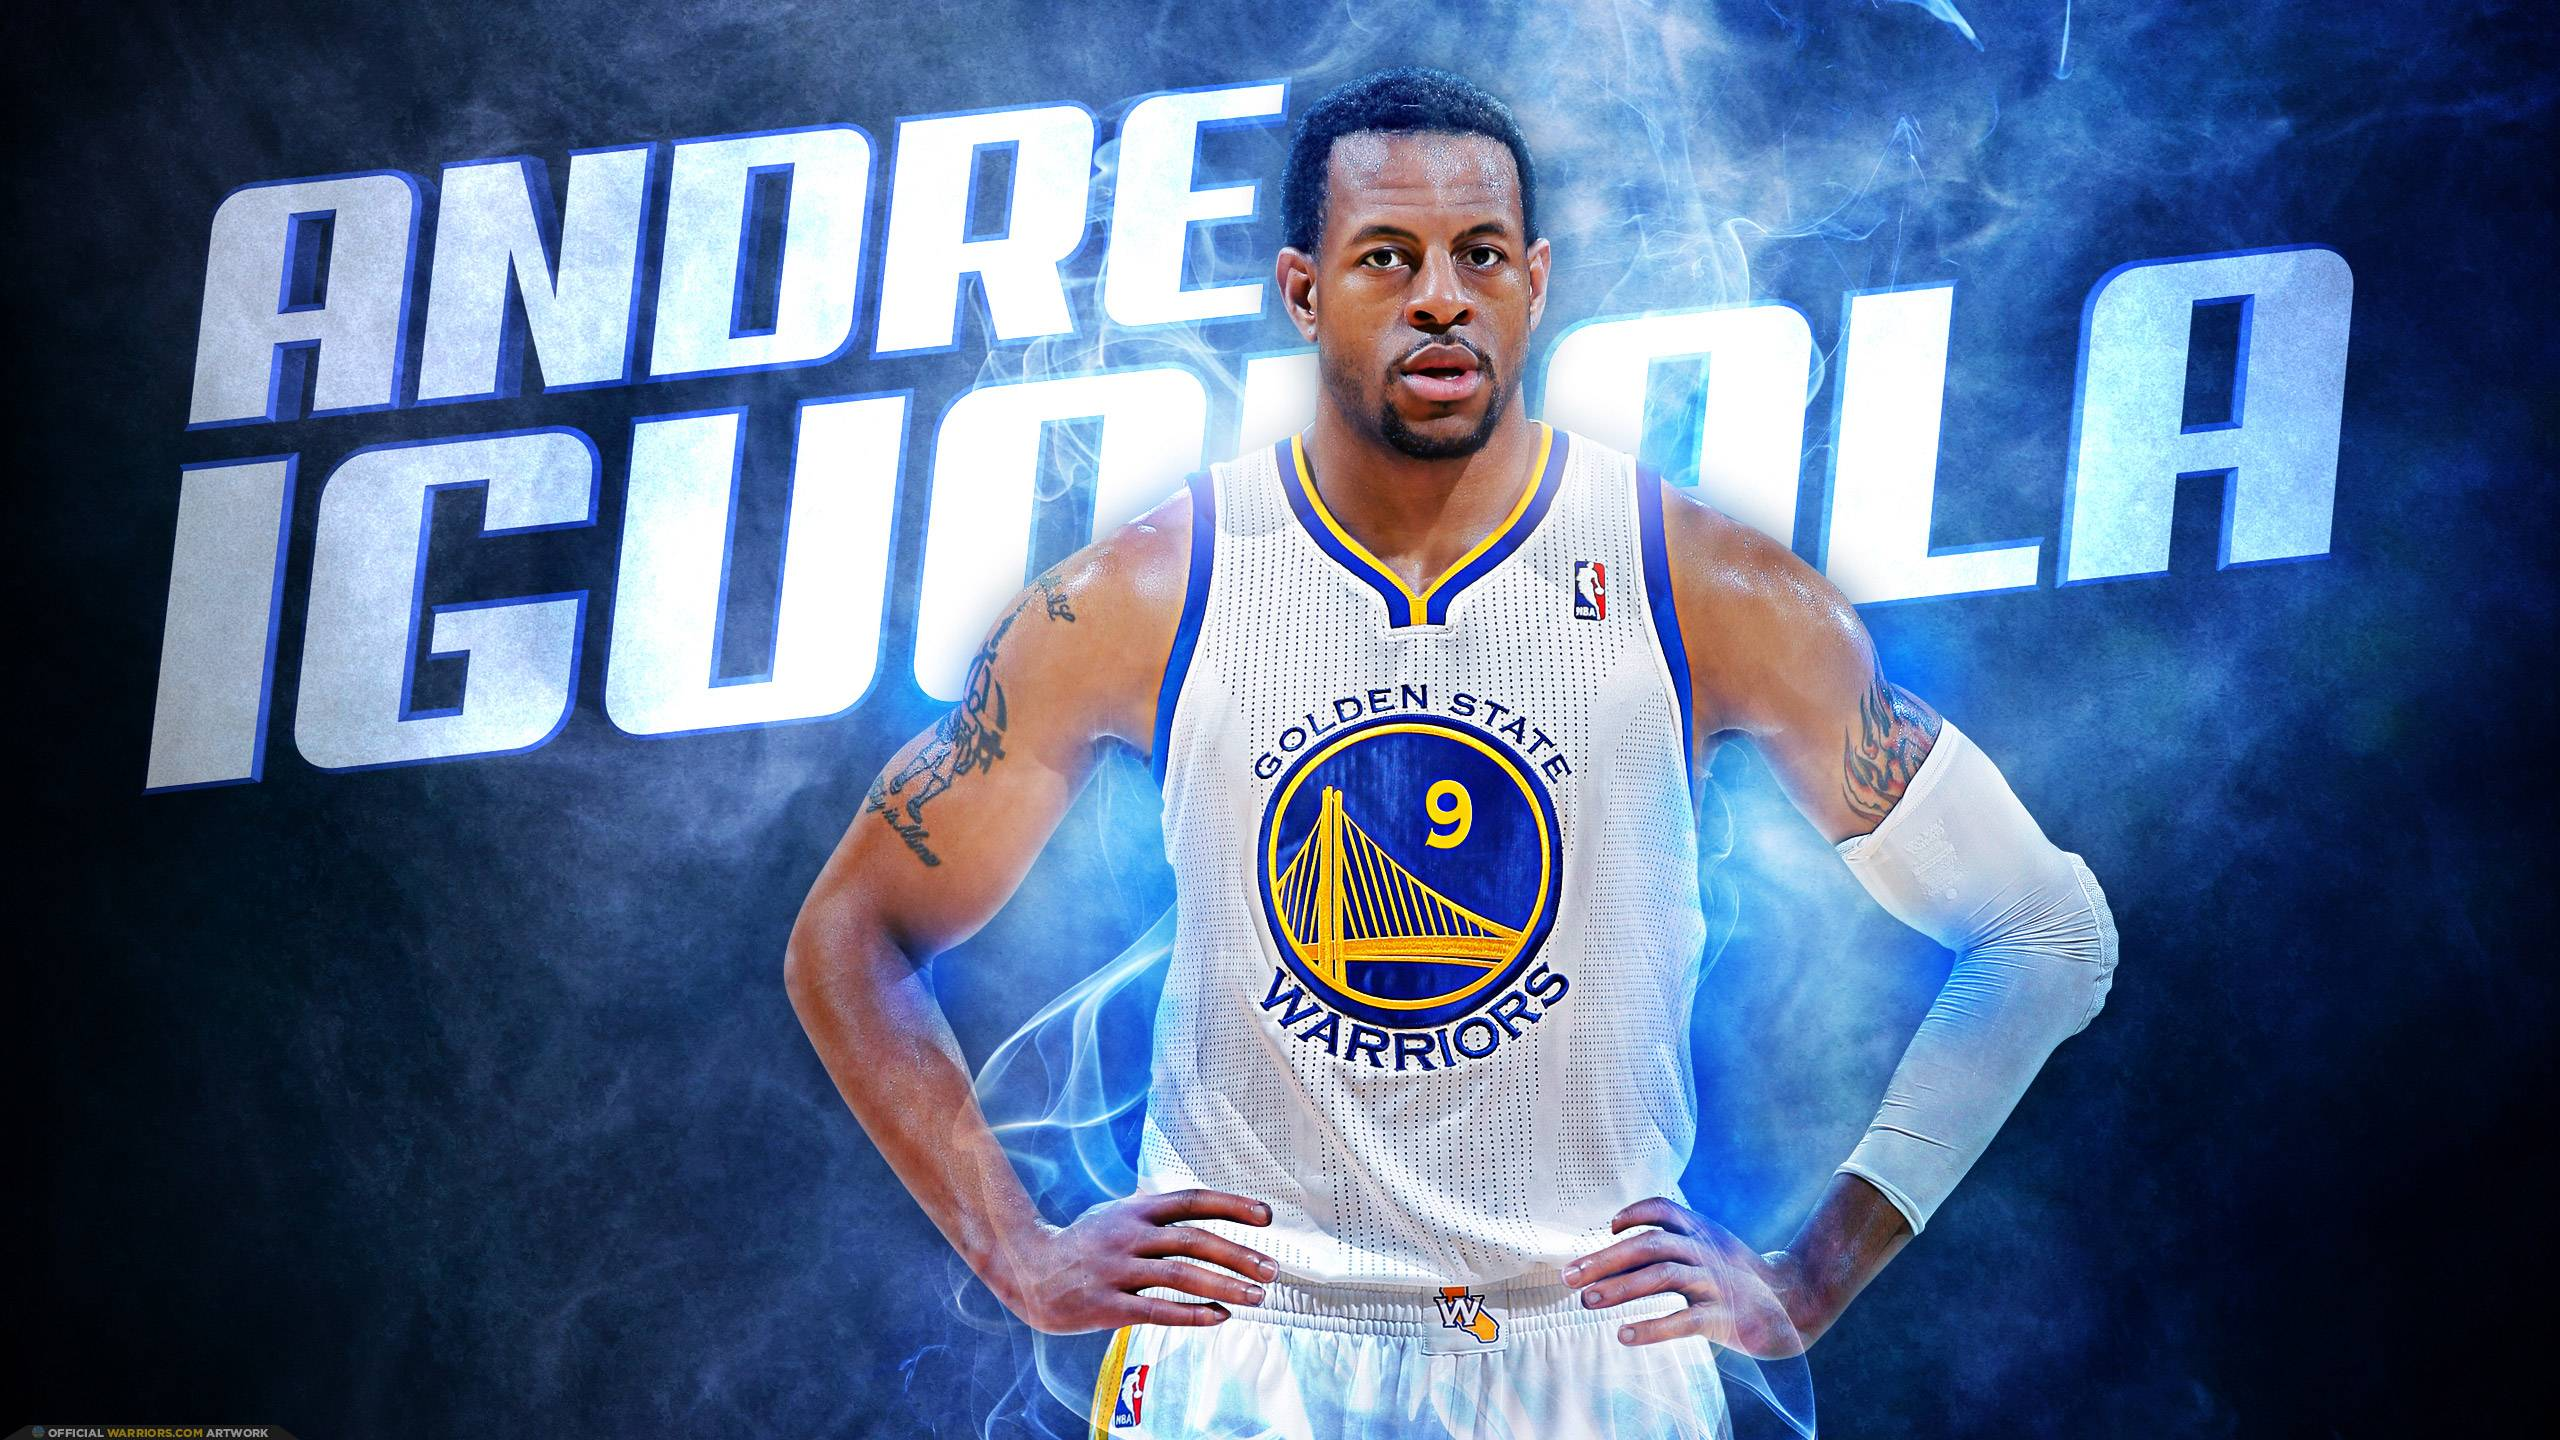 Andre Iguodala Wallpapers Wallpaper Cave